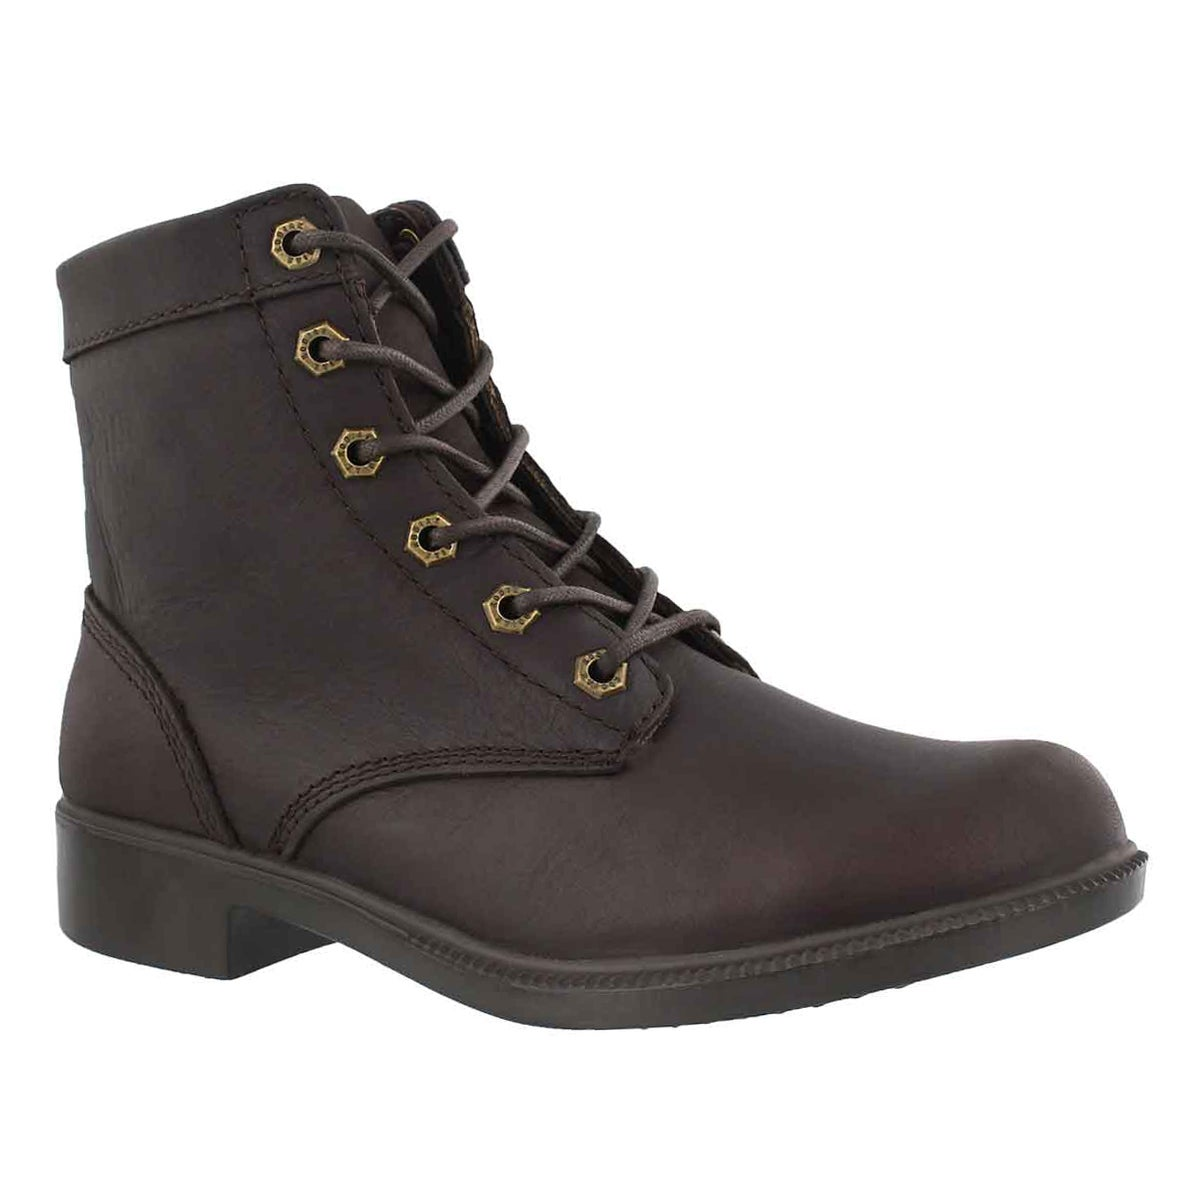 Women's ORIGINAL brown waterproof ankle boots